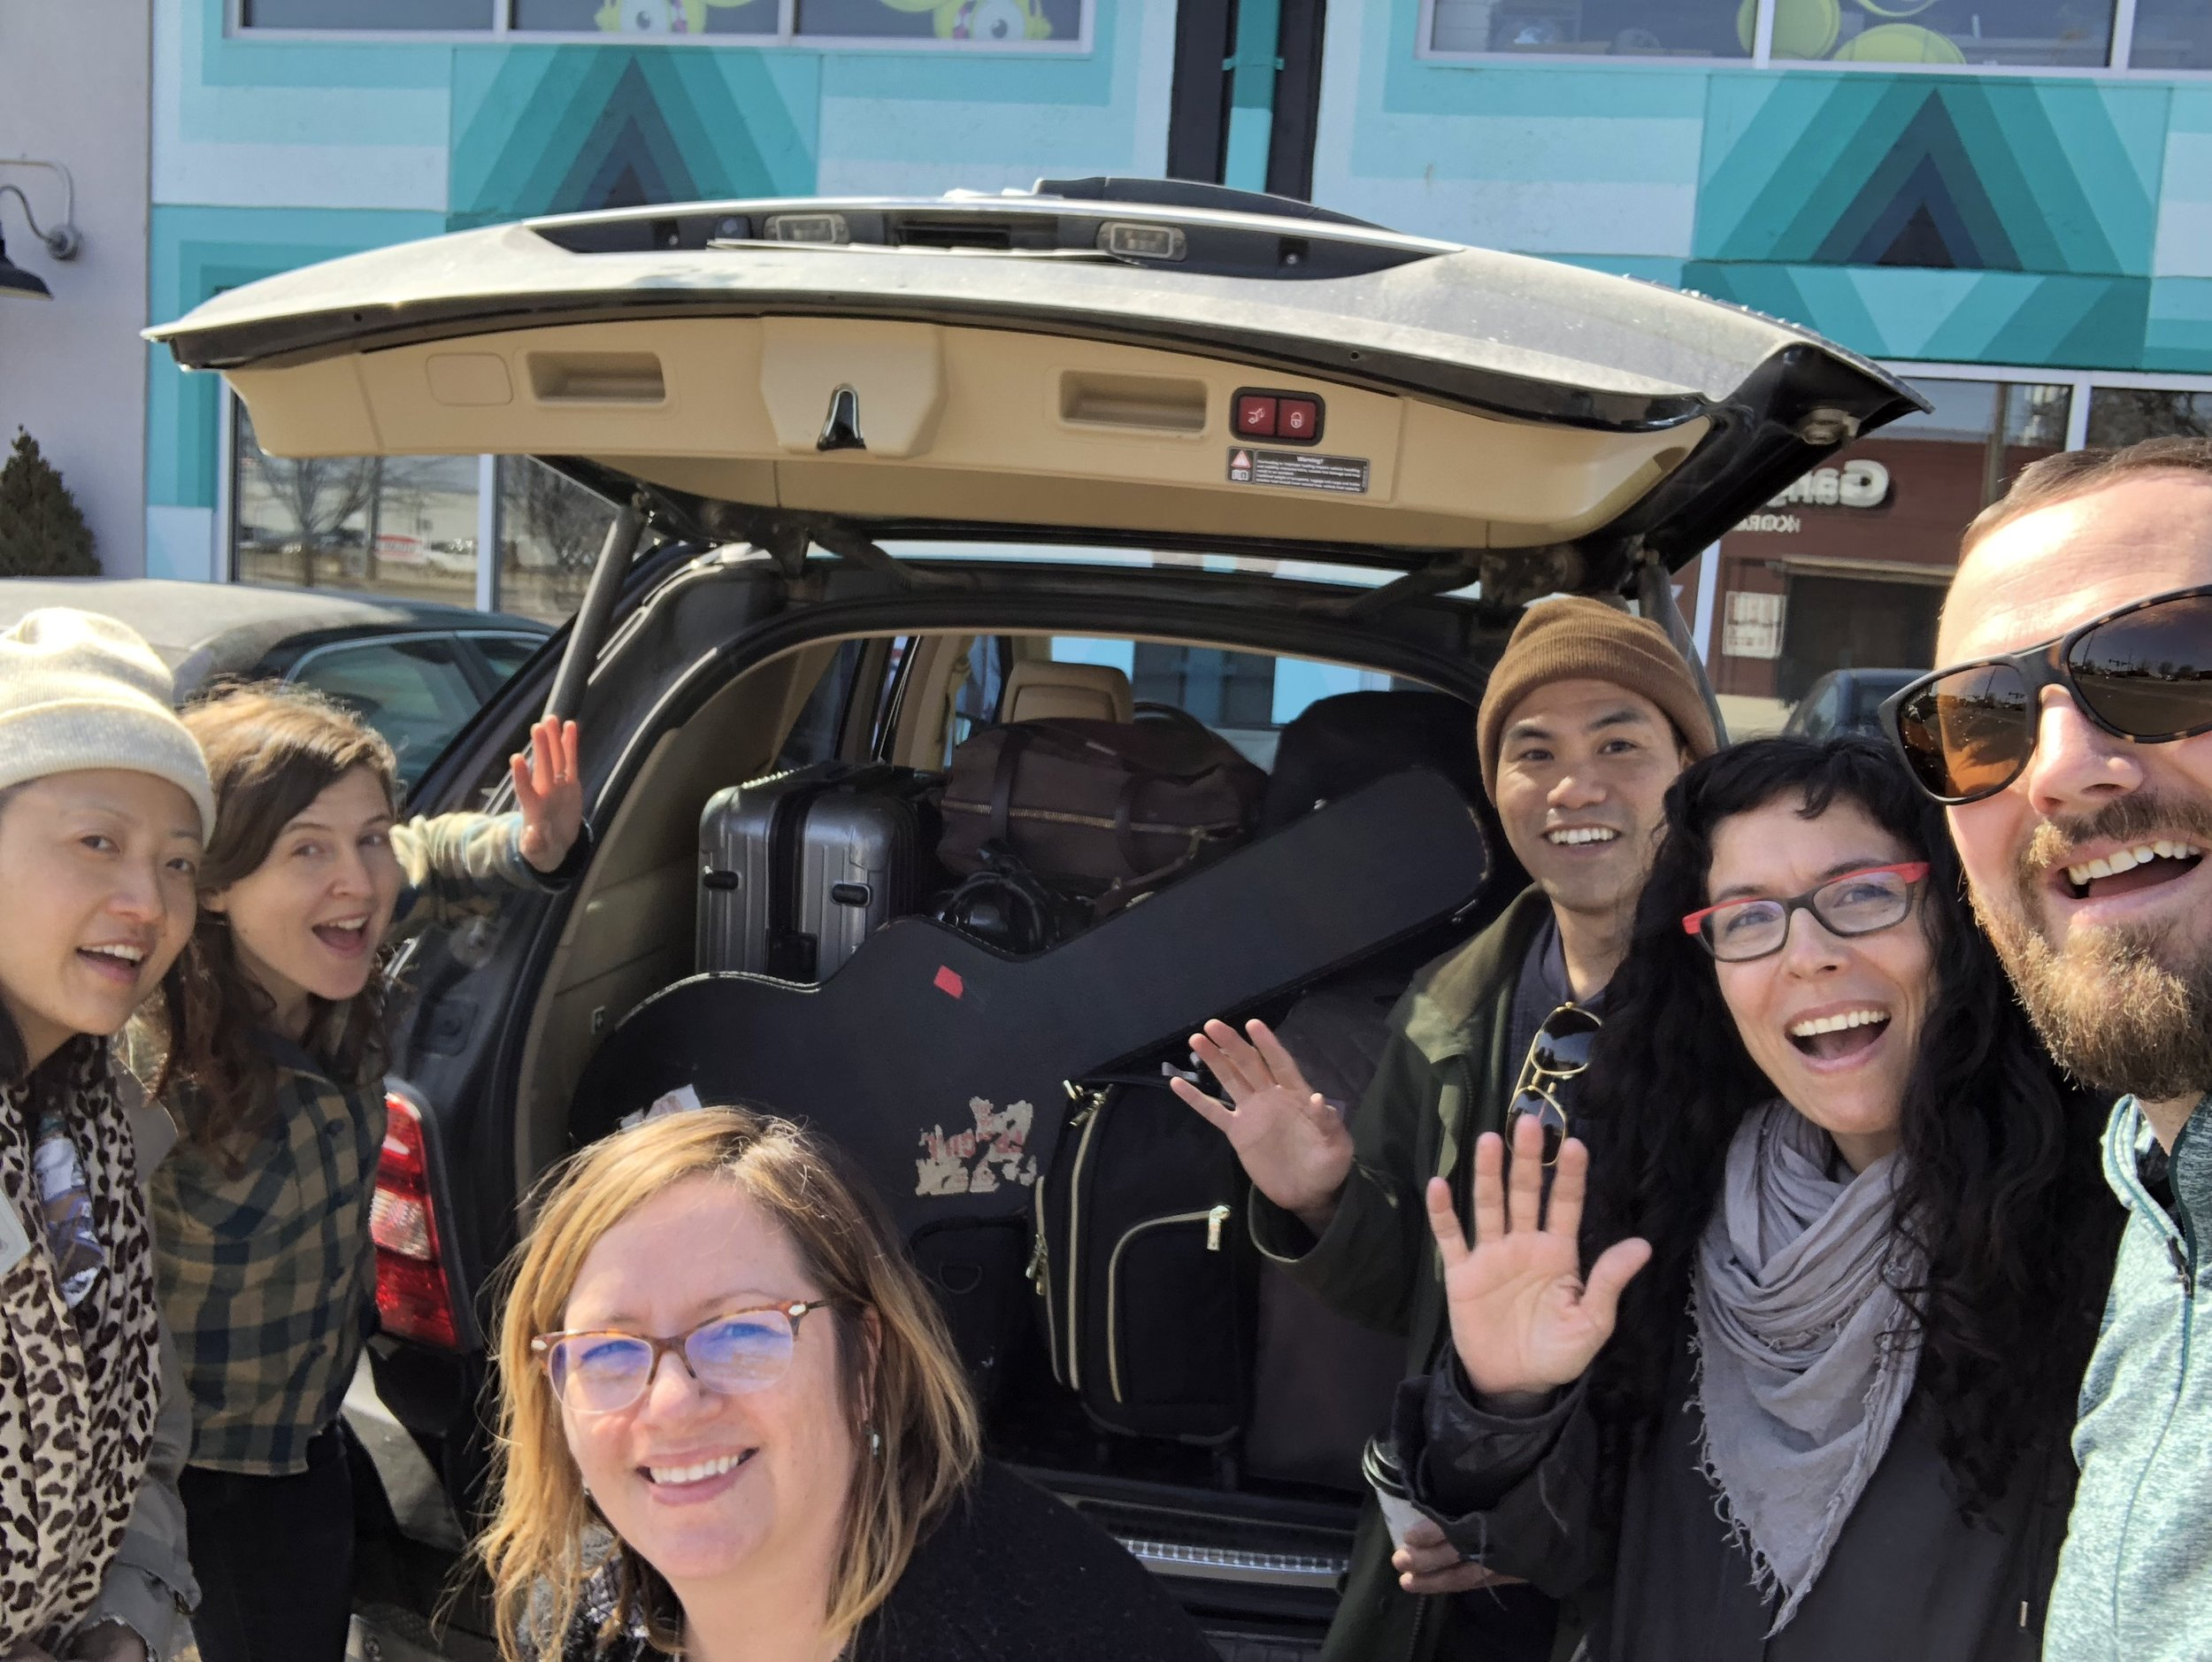 Some of your Jump!Star team: Jee Young Sim, Mirah, Kristin Beal, Alan Calpe, George Ferrandi and Ryan Gates.